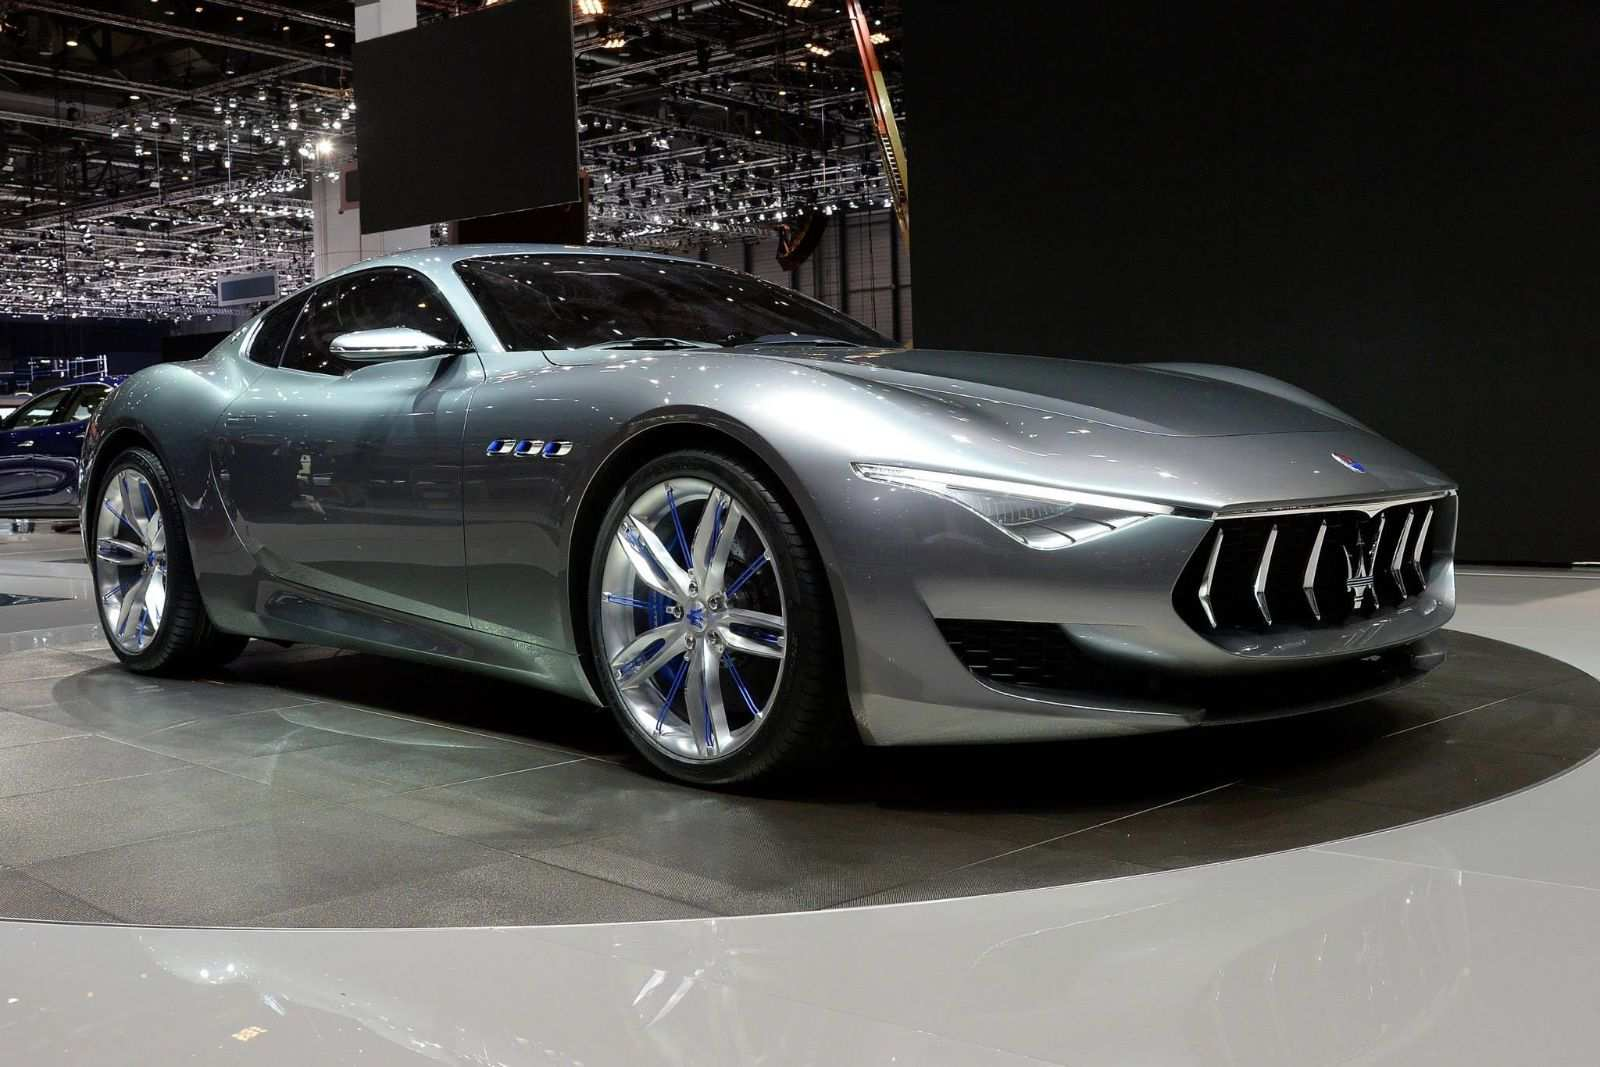 24 Concept of 2020 Maserati Prices with 2020 Maserati